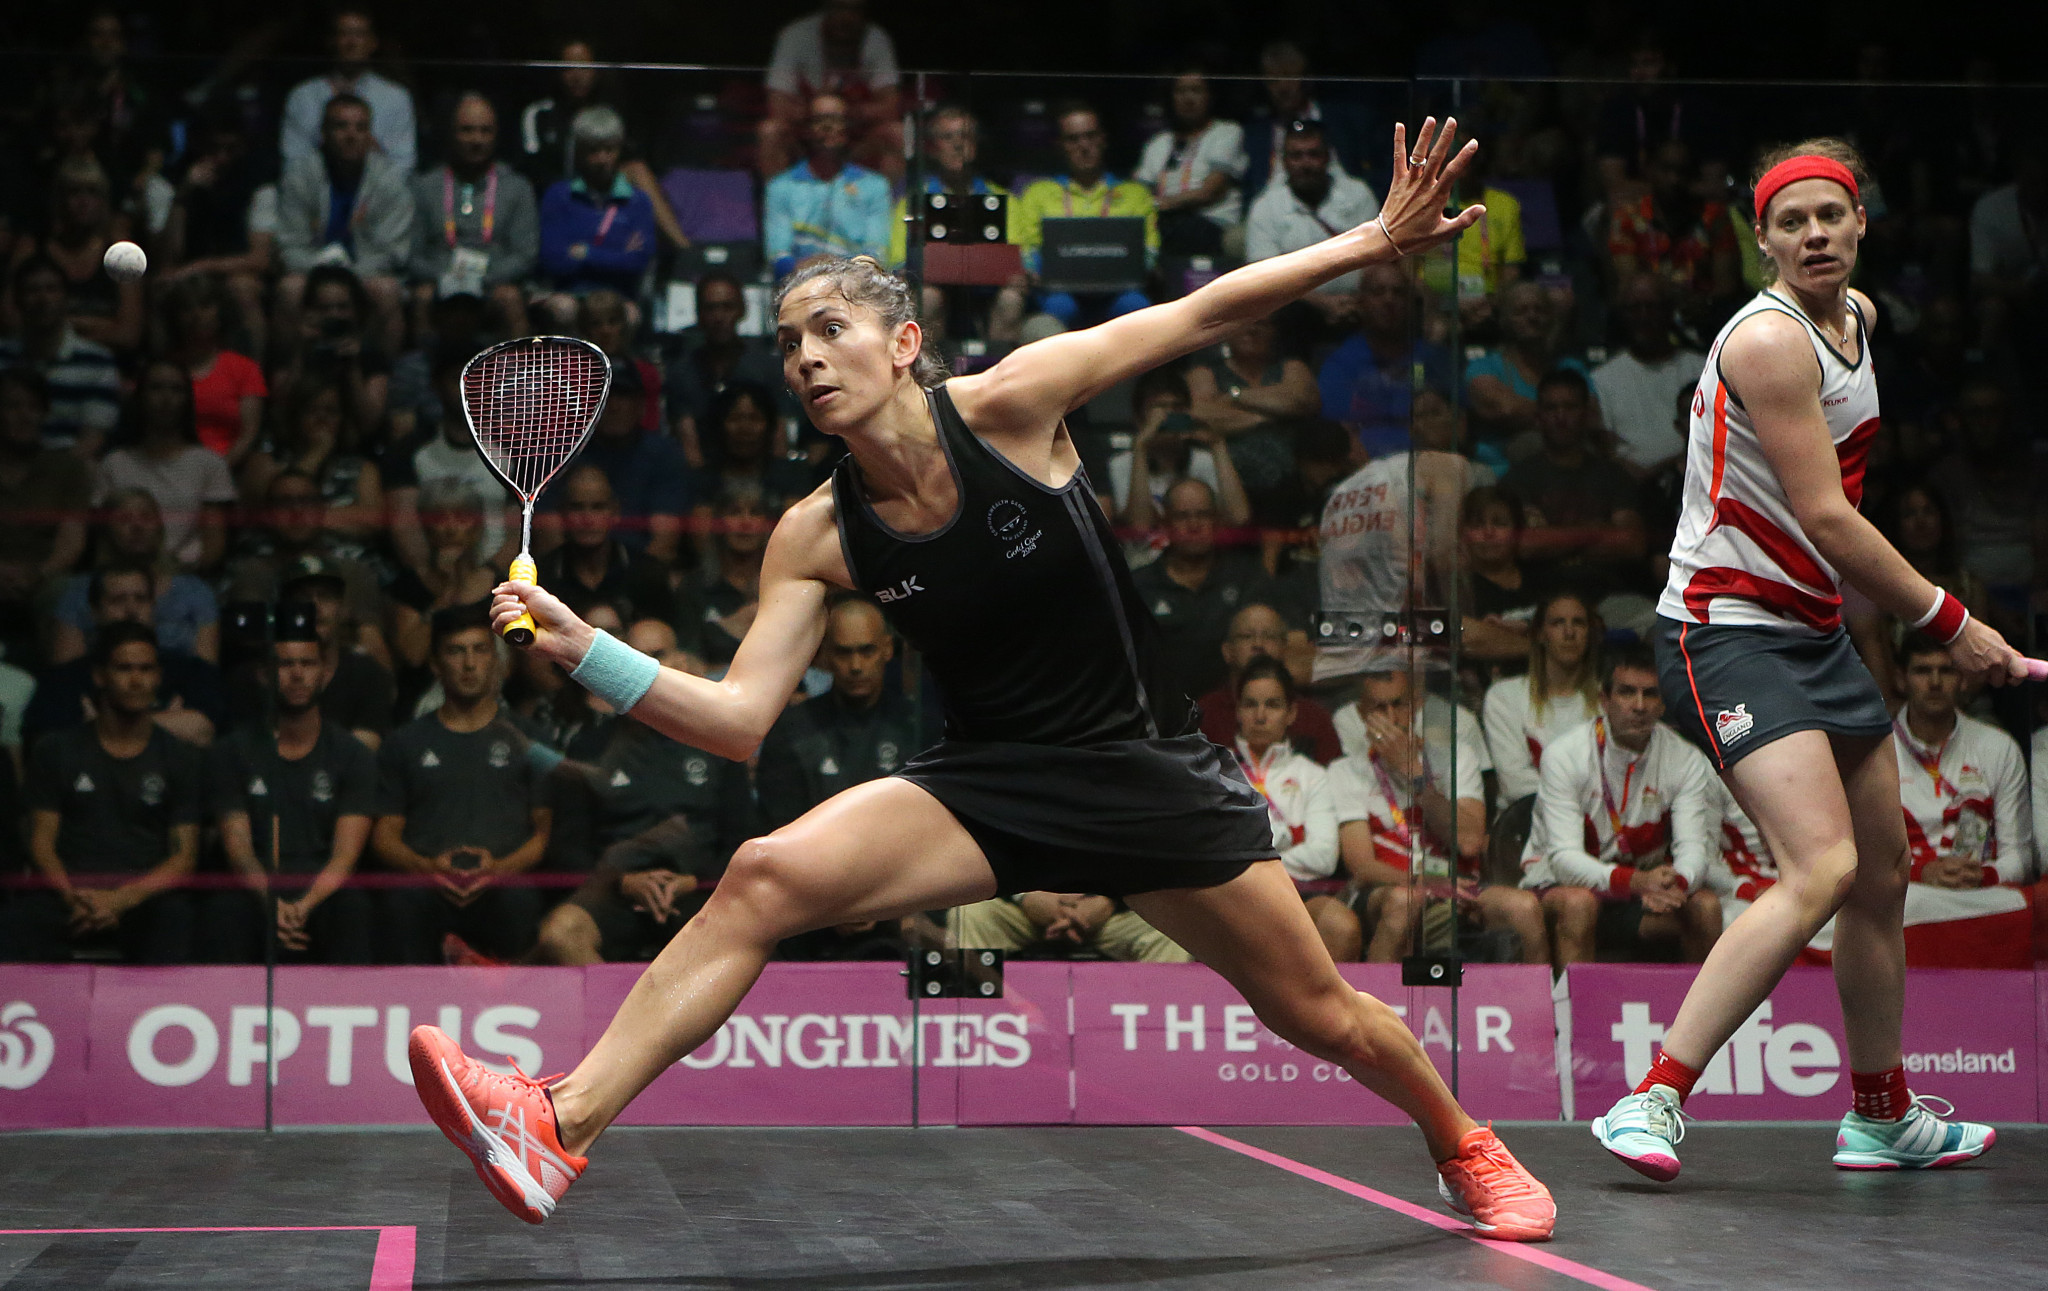 King crowned winner of women's squash singles gold as Willstrop ends wait for men's Commonwealth title